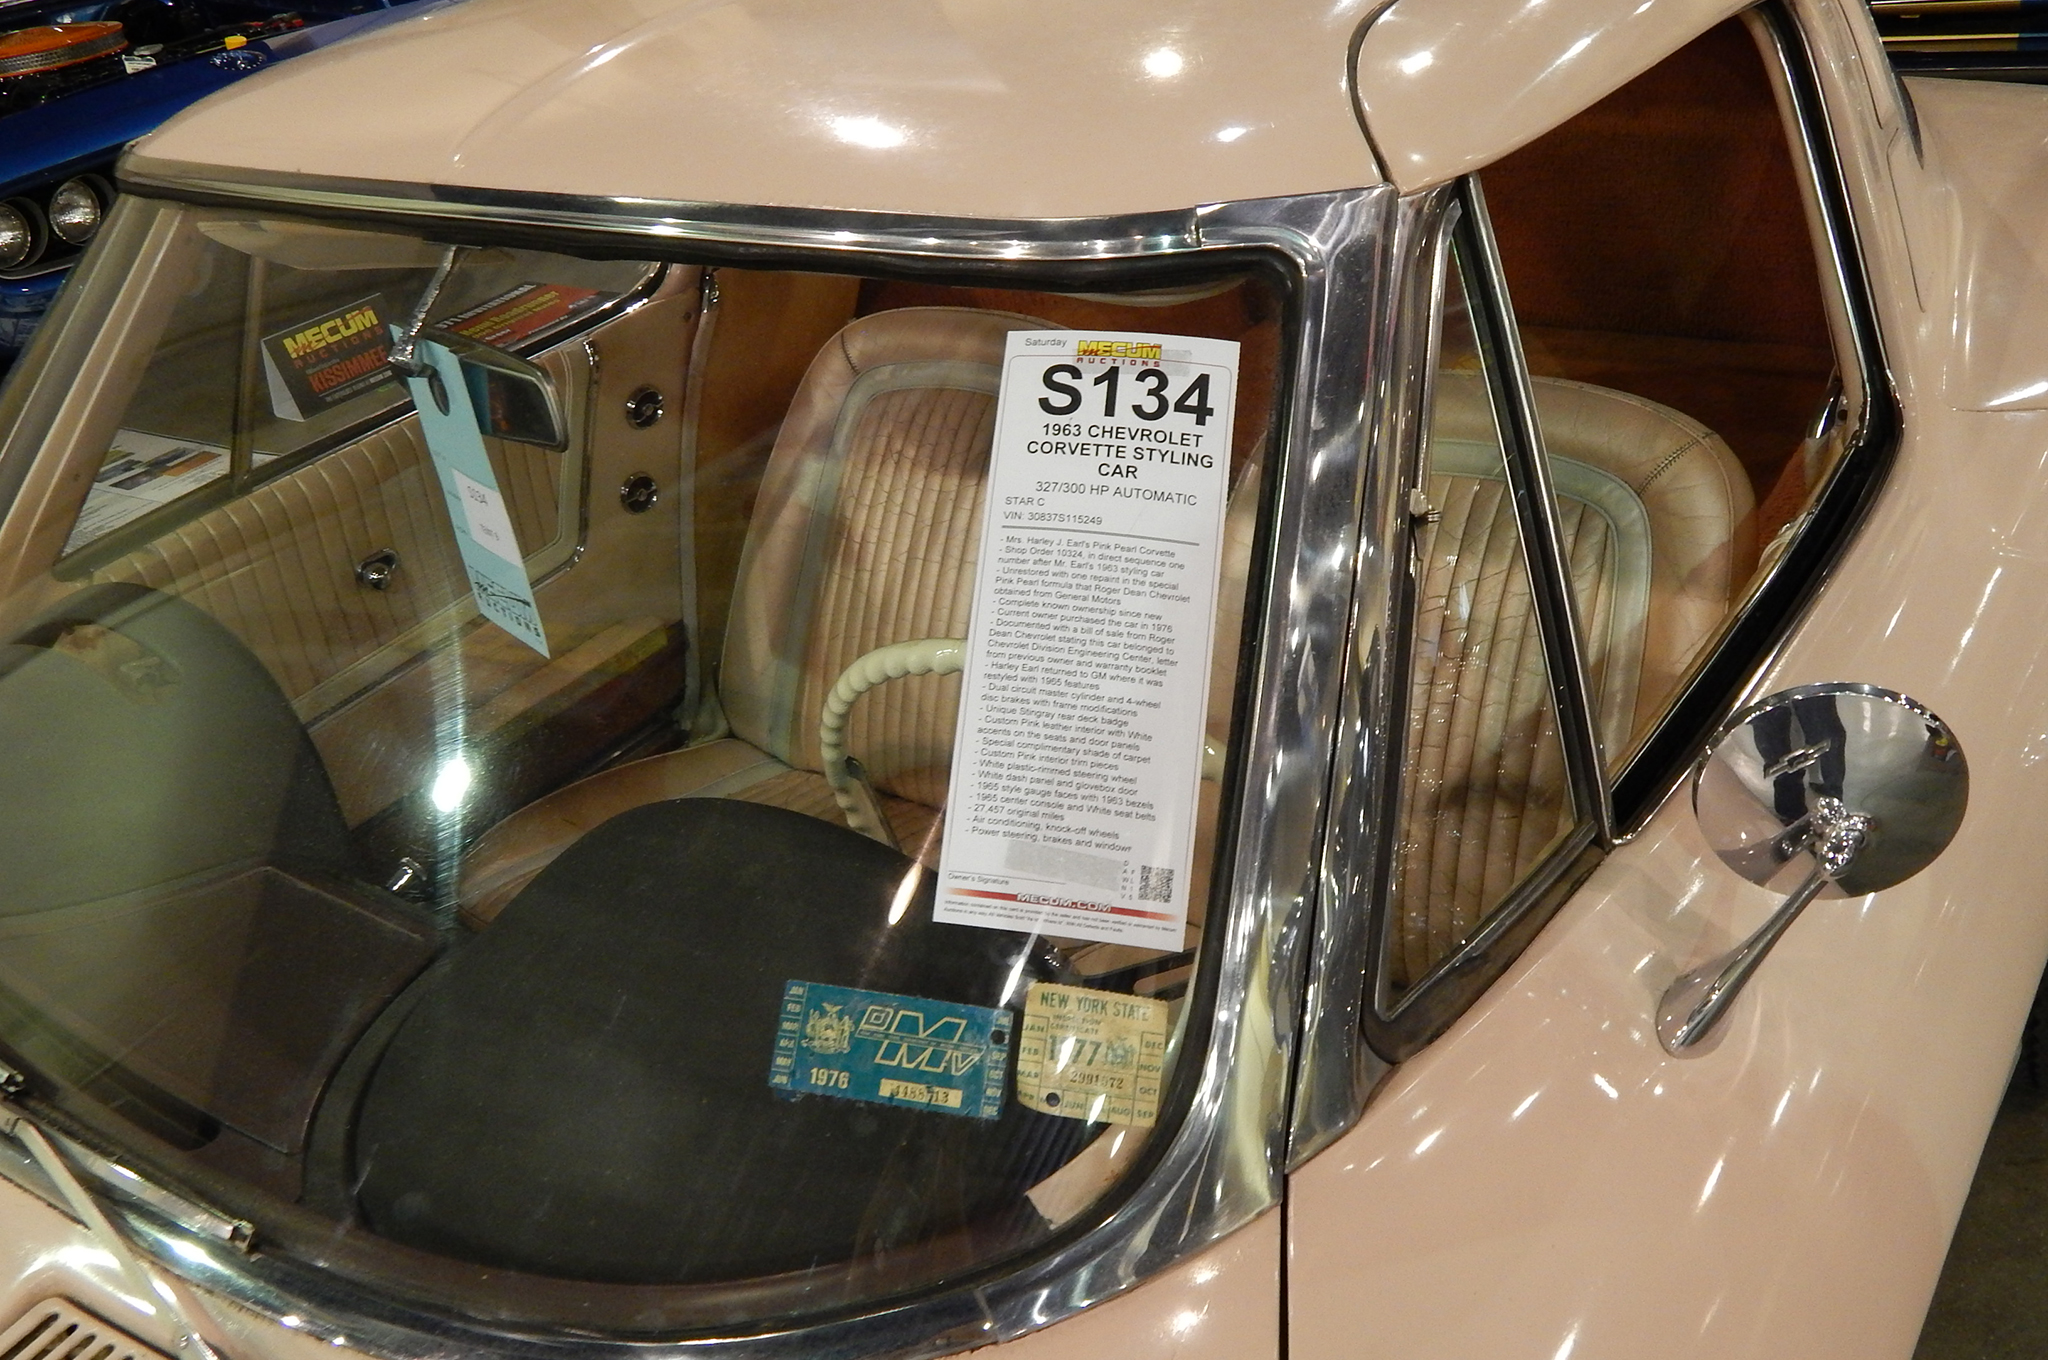 Yes, you are seeing a pink interior and exterior on this unrestored 1963. It was a one-off Sting Ray styling exercise by Harley Earl for his wife. White steering wheel, dash, and upholstery accents, along with unique badging are preserved in this 26,000-mile piece of history.